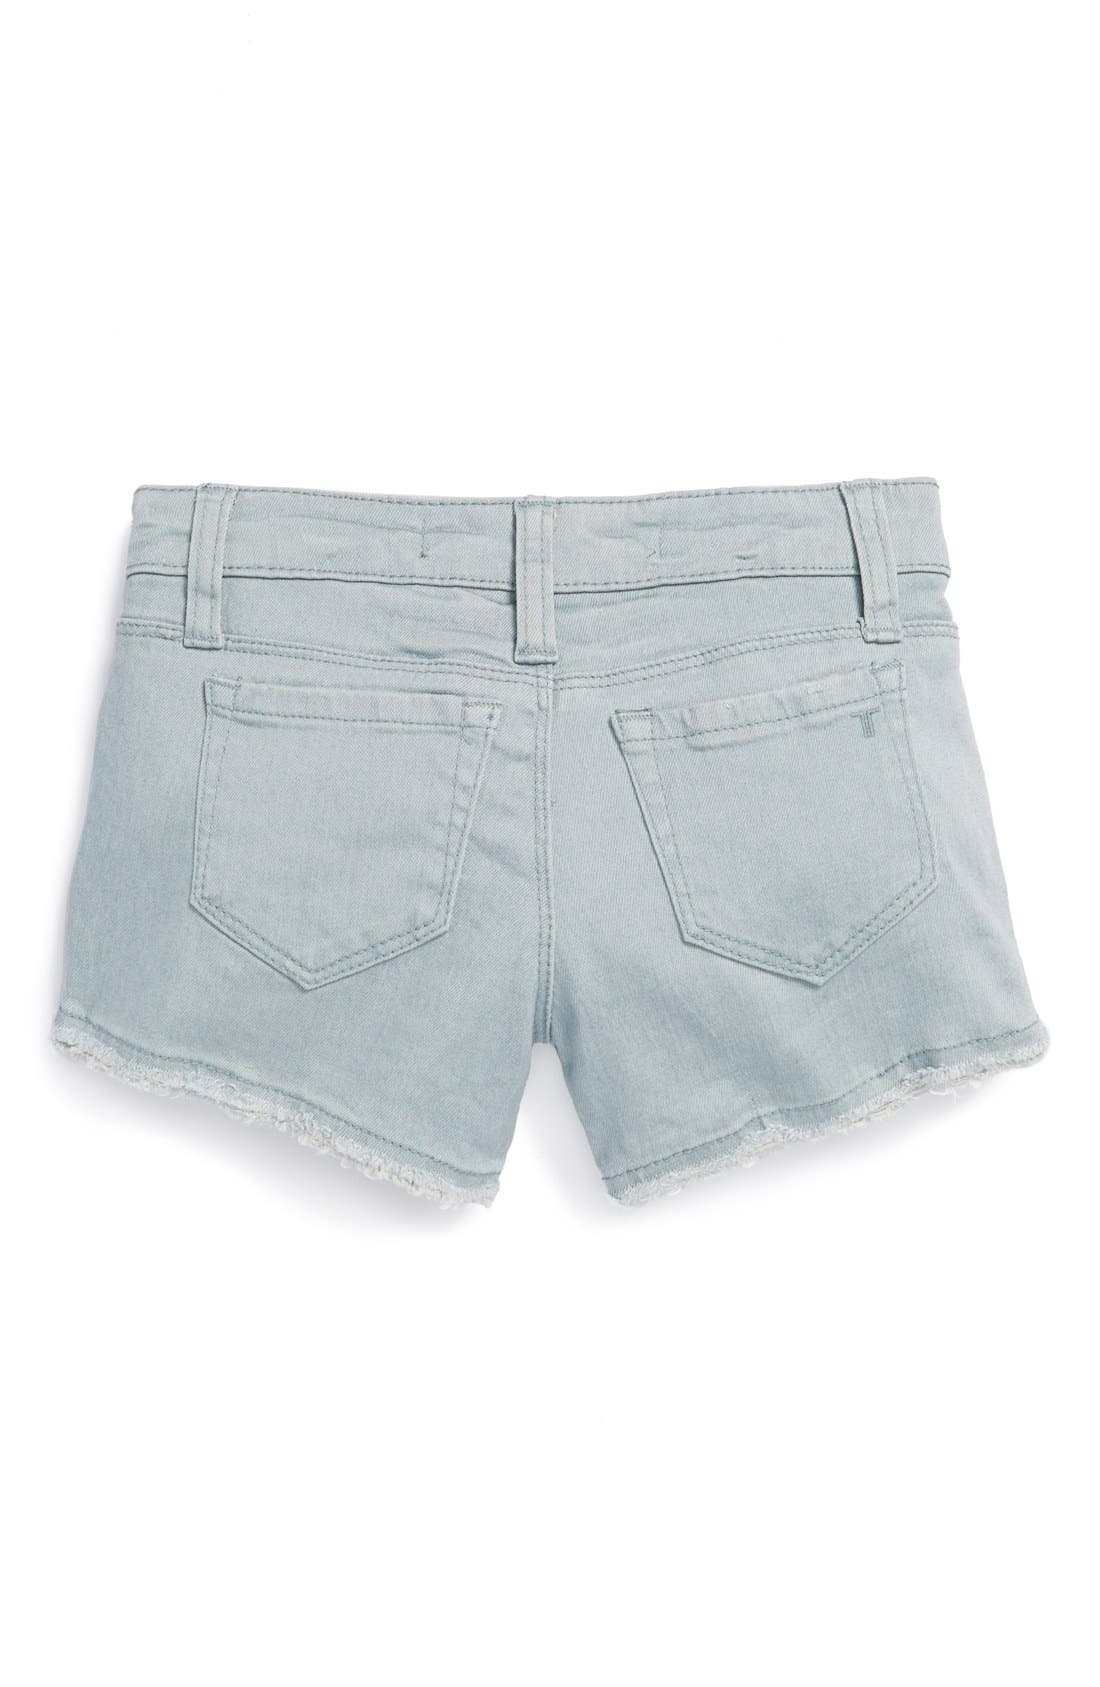 Alternate Image 1 Selected - Tractr Frayed Denim Shorts (Big Girls)